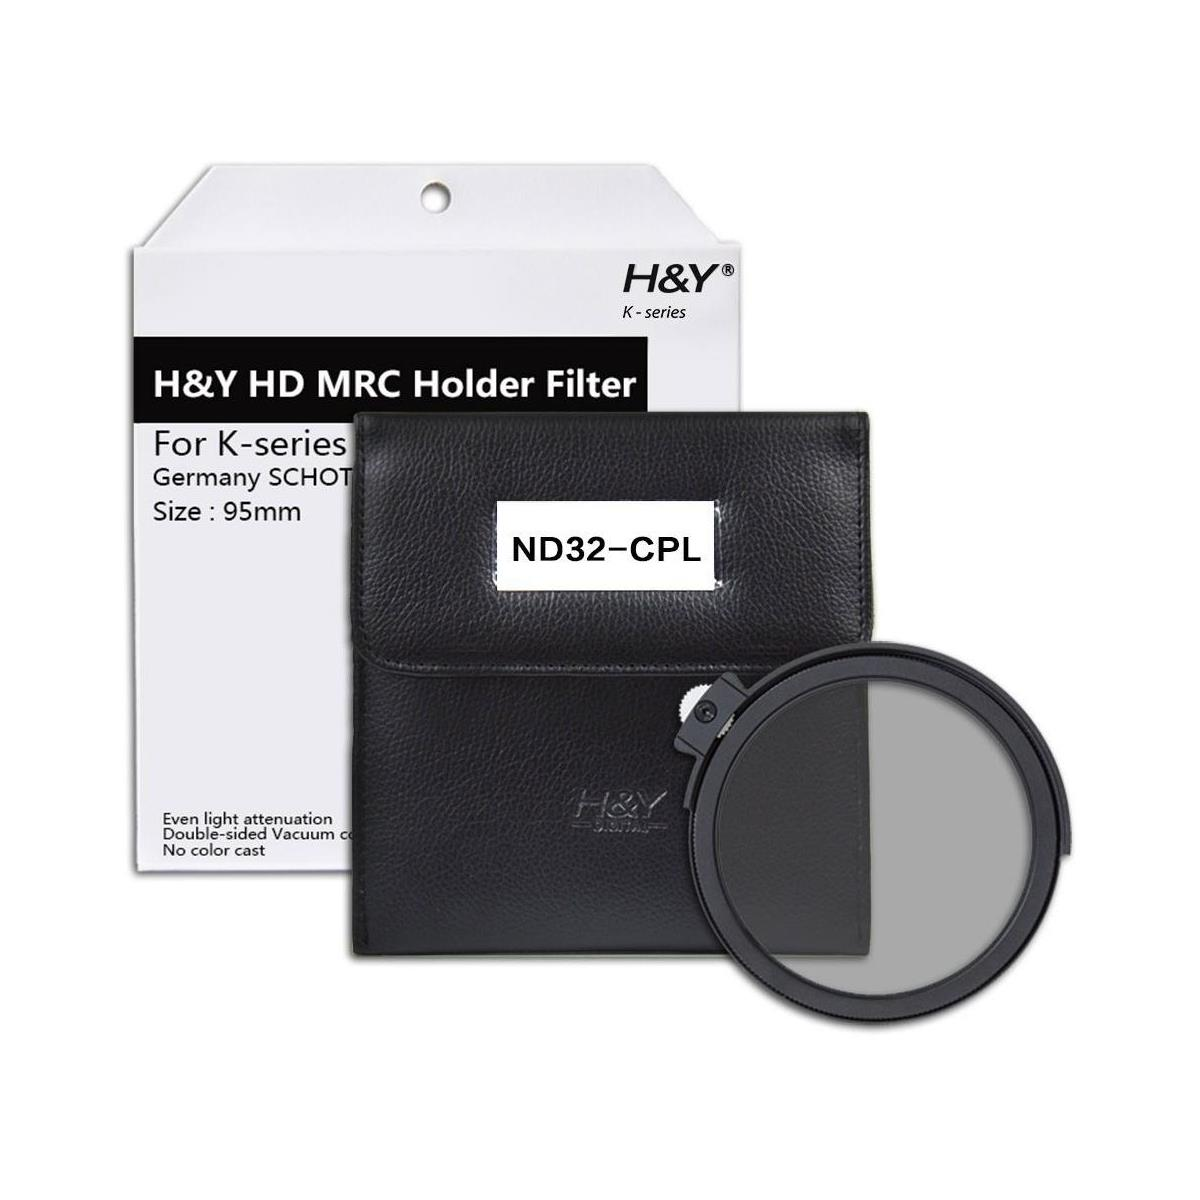 hy filters 2 image